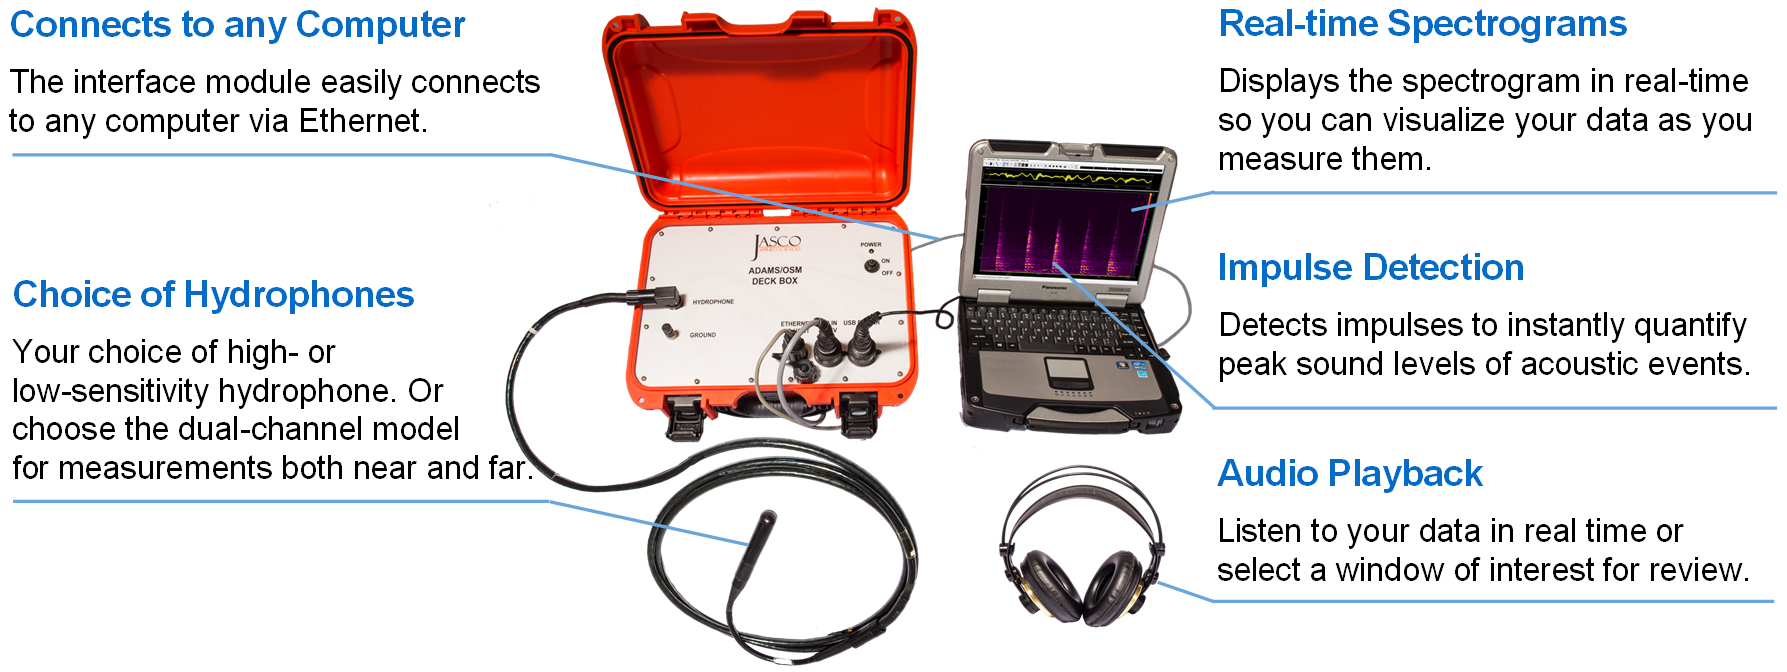 JASCO's underwater sound level meter, the Ocean Sound Meter (OSM), features real-time audio playback, choice of hydrophone, real-time spectrograms, impulse detection, and connects to any computer